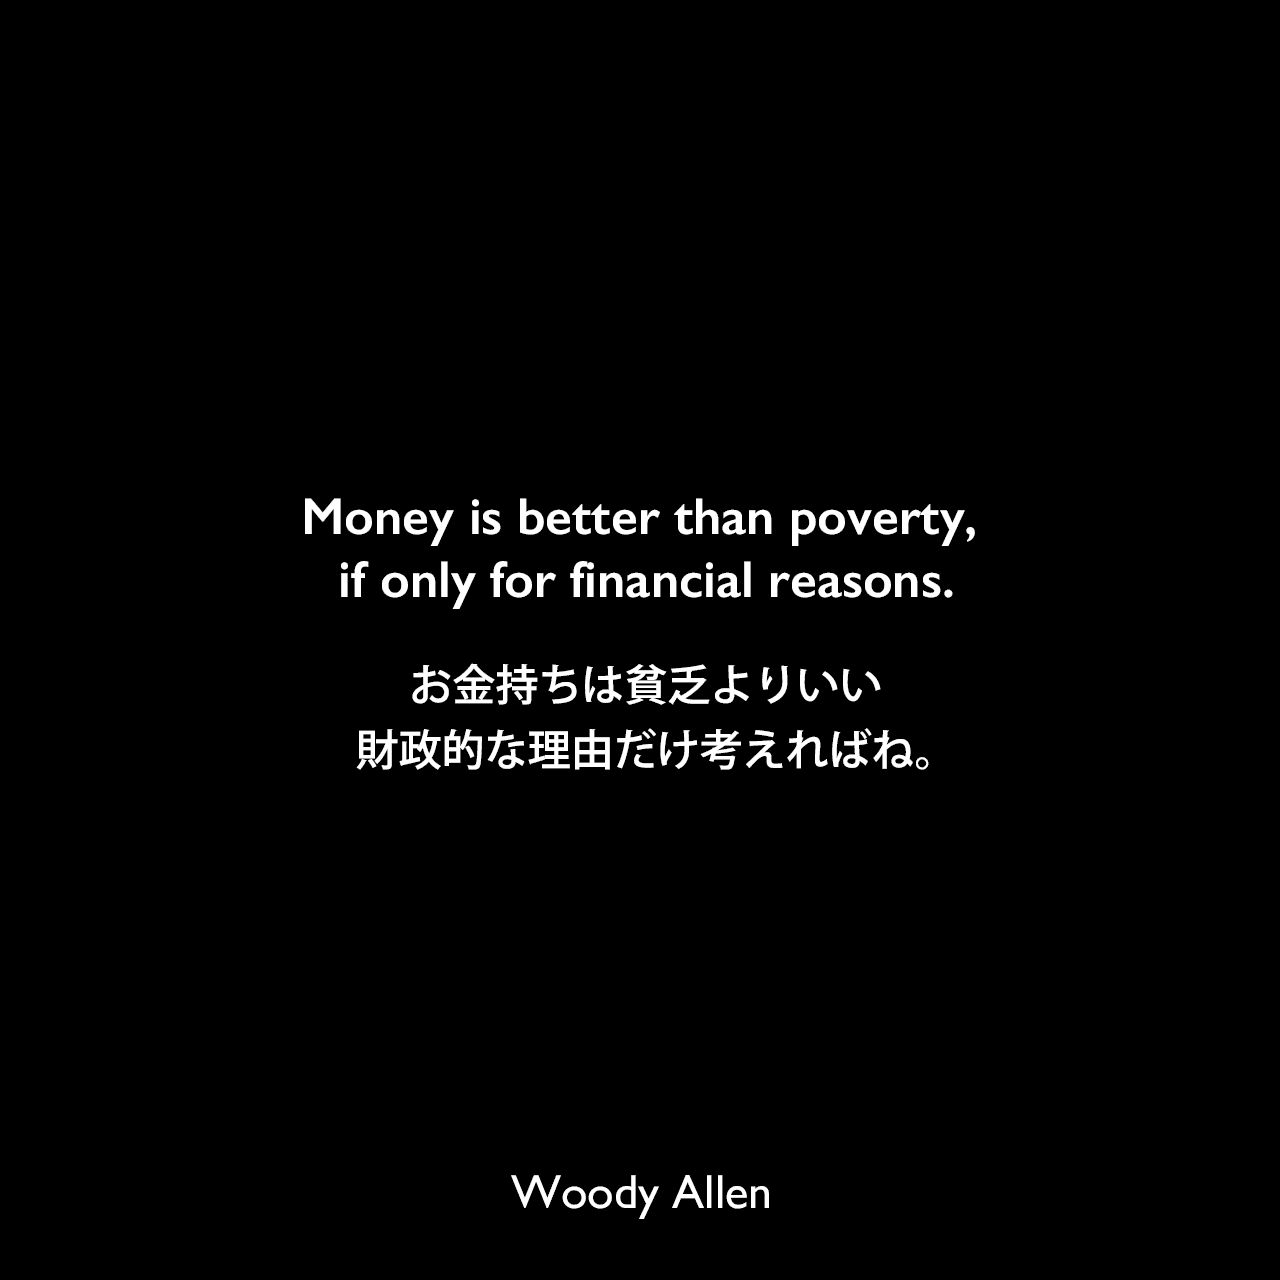 Money is better than poverty, if only for financial reasons.お金持ちは貧乏よりいい、財政的な理由だけ考えればね。Woody Allen